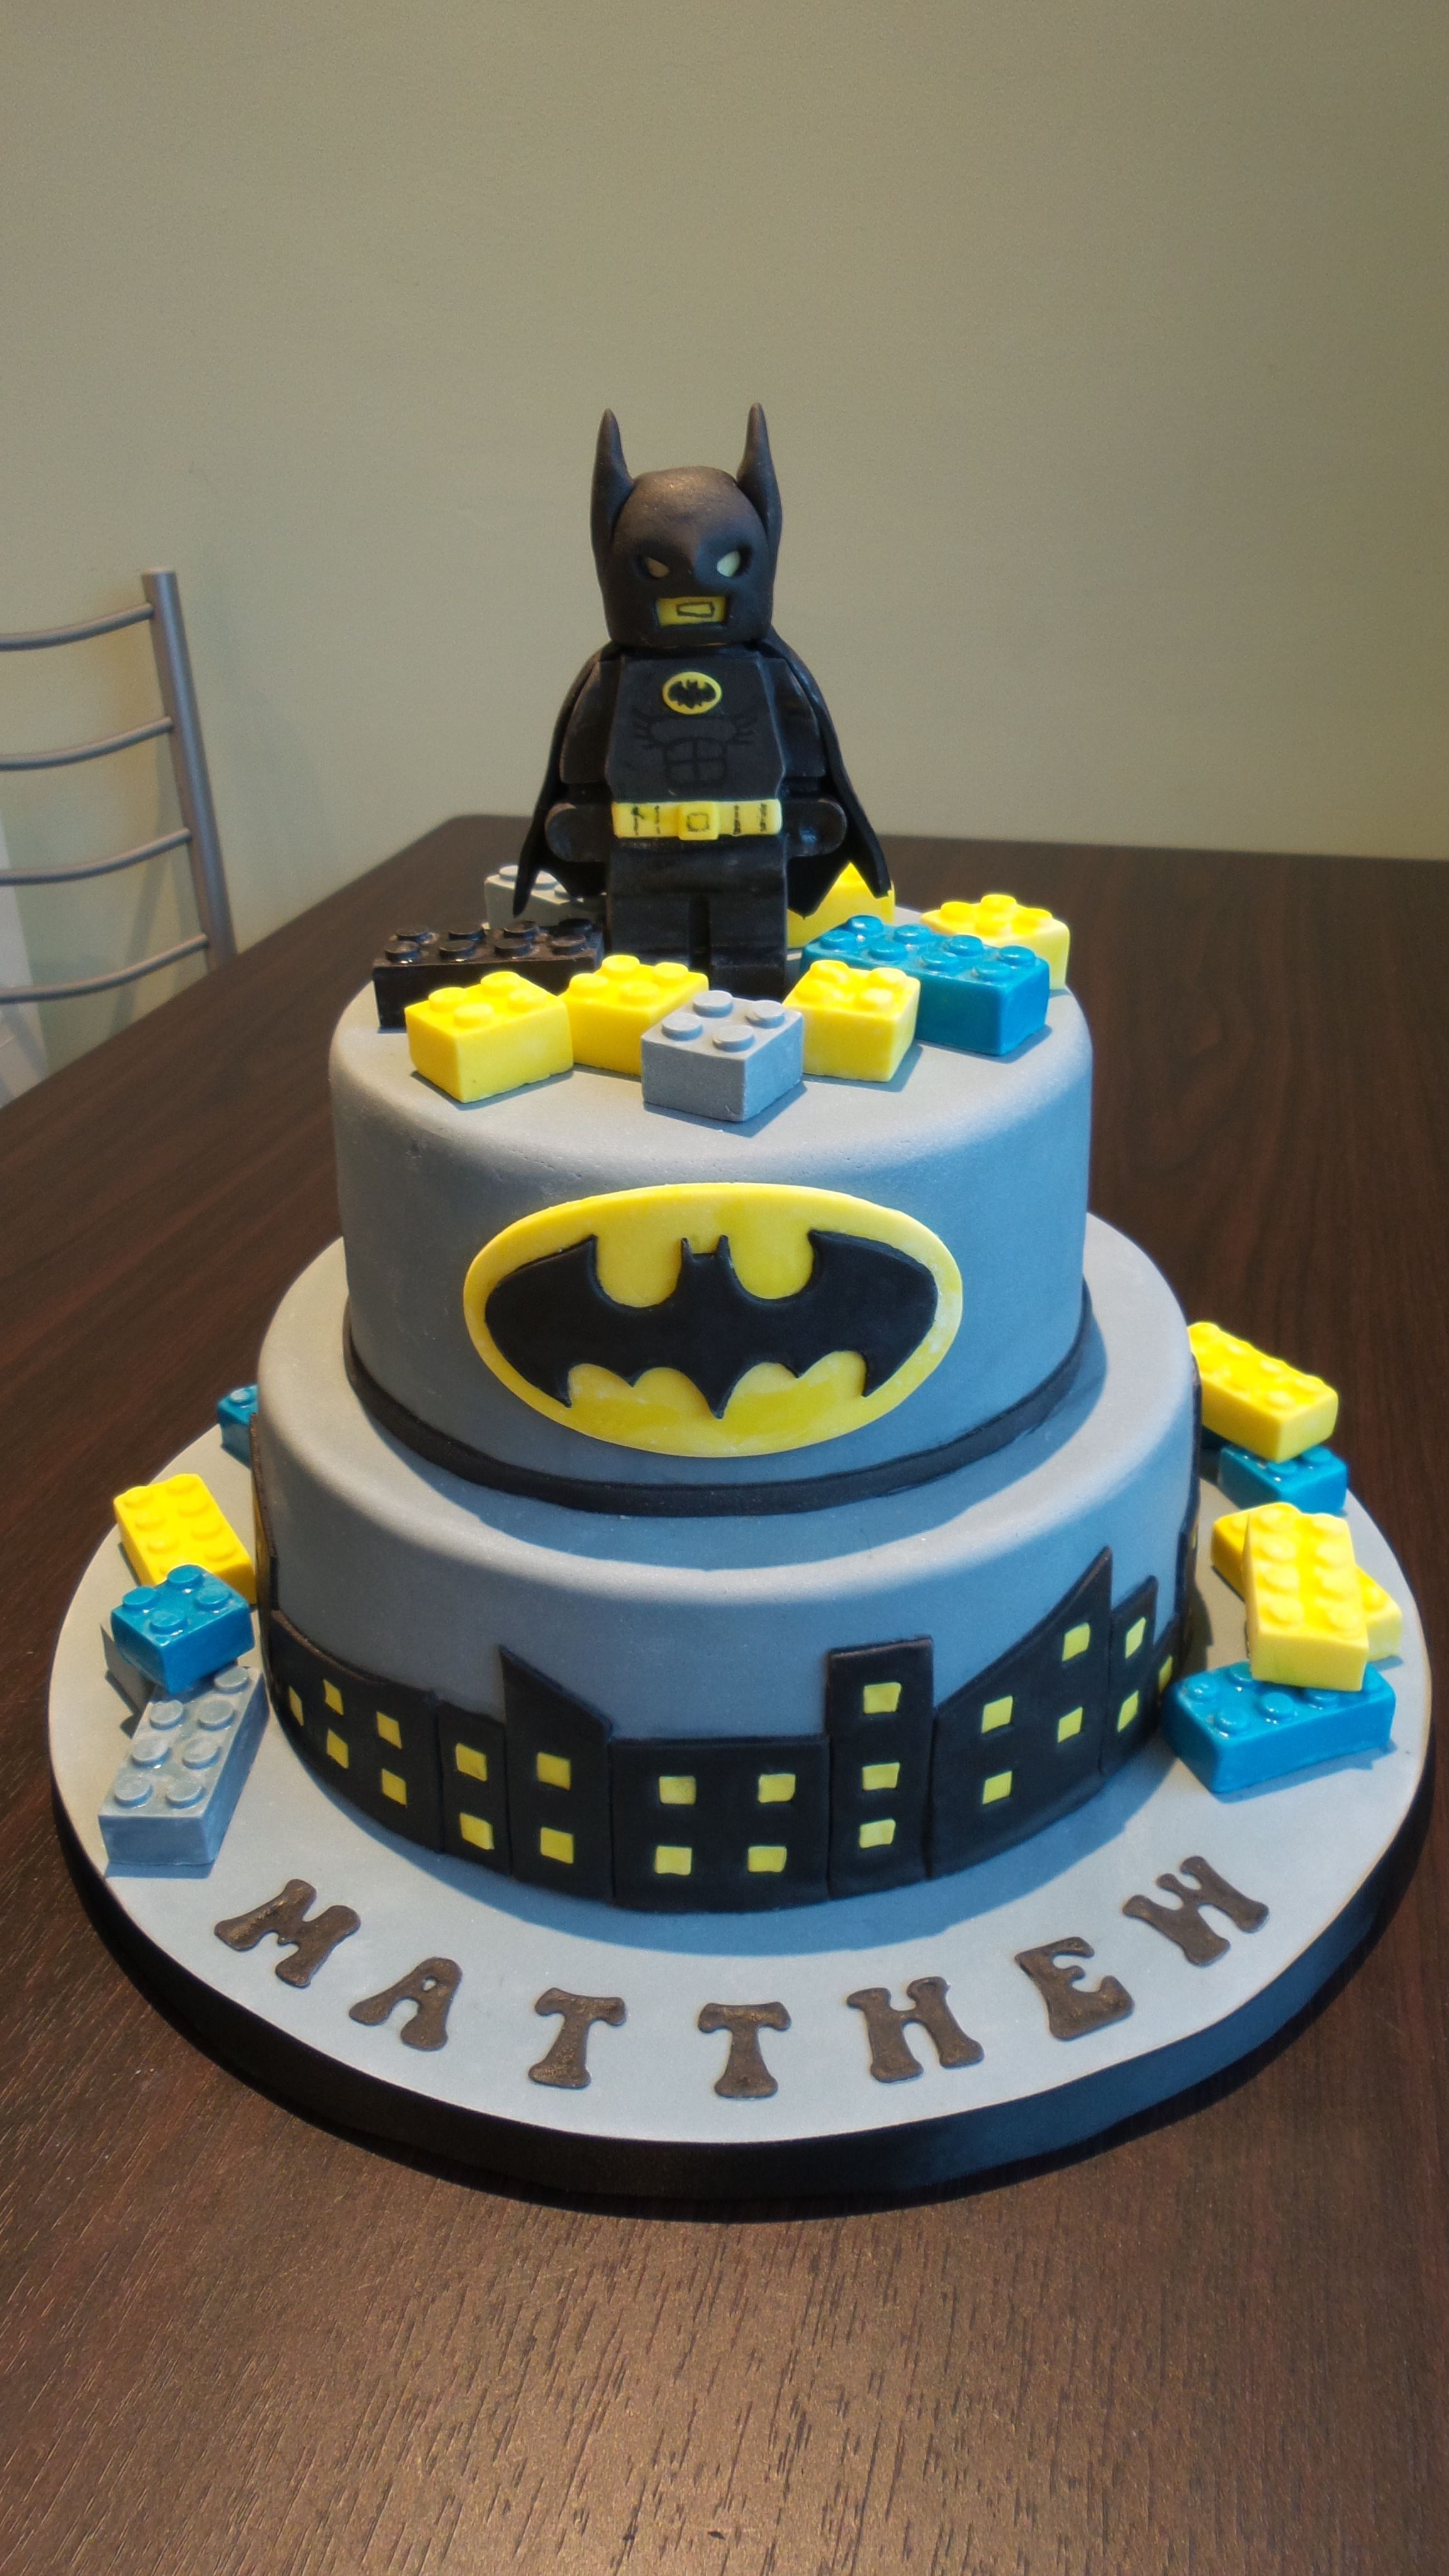 Incredible Lego Batman Cake Batman Birthday Cakes Batman Cakes Lego Personalised Birthday Cards Veneteletsinfo